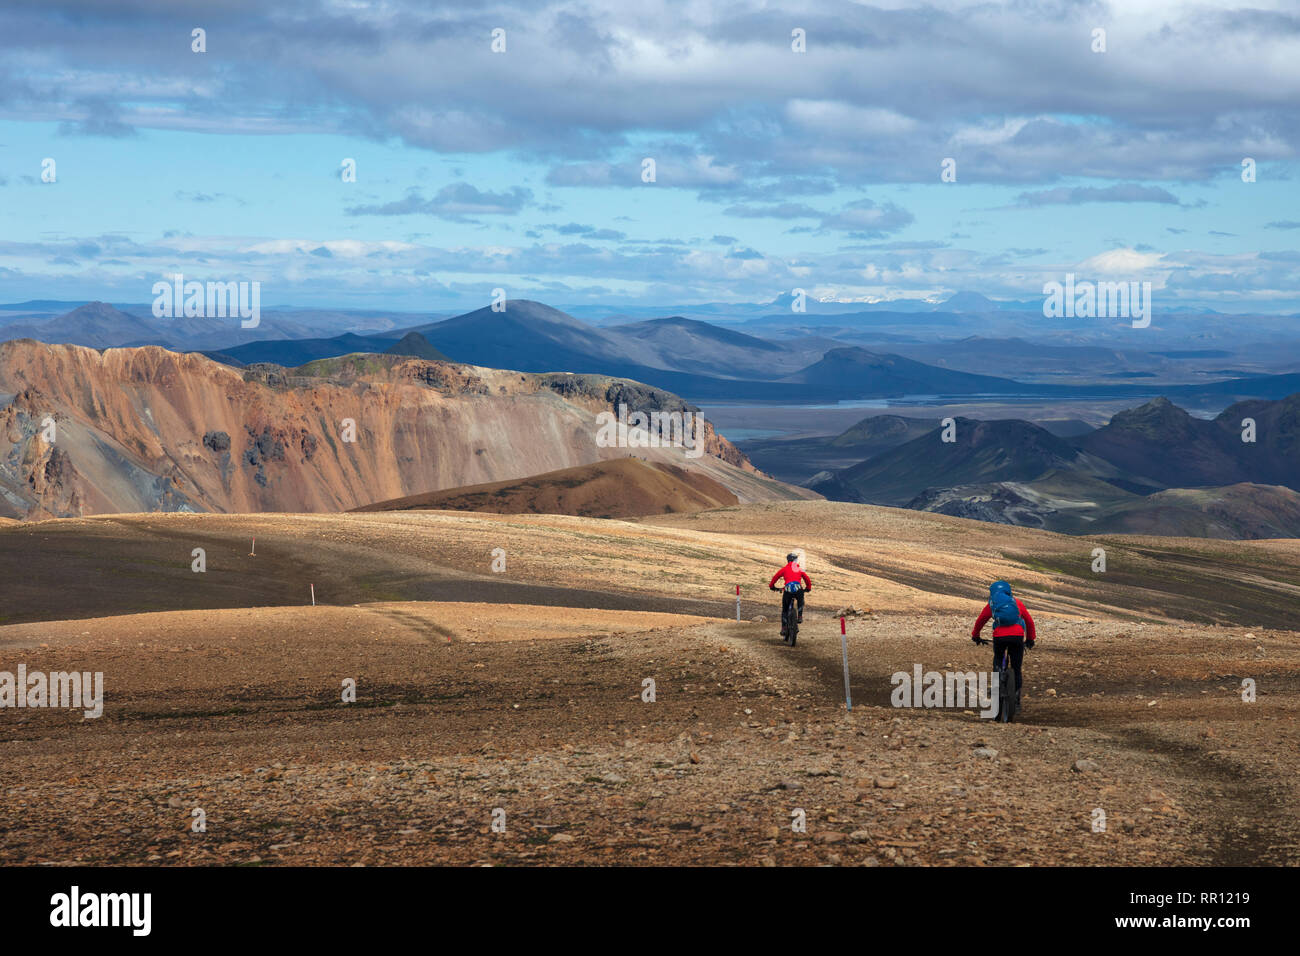 Mountain bikers on the Laugavegur trail  near Landmannalaugar. Central Highlands, Sudhurland, Iceland. - Stock Image